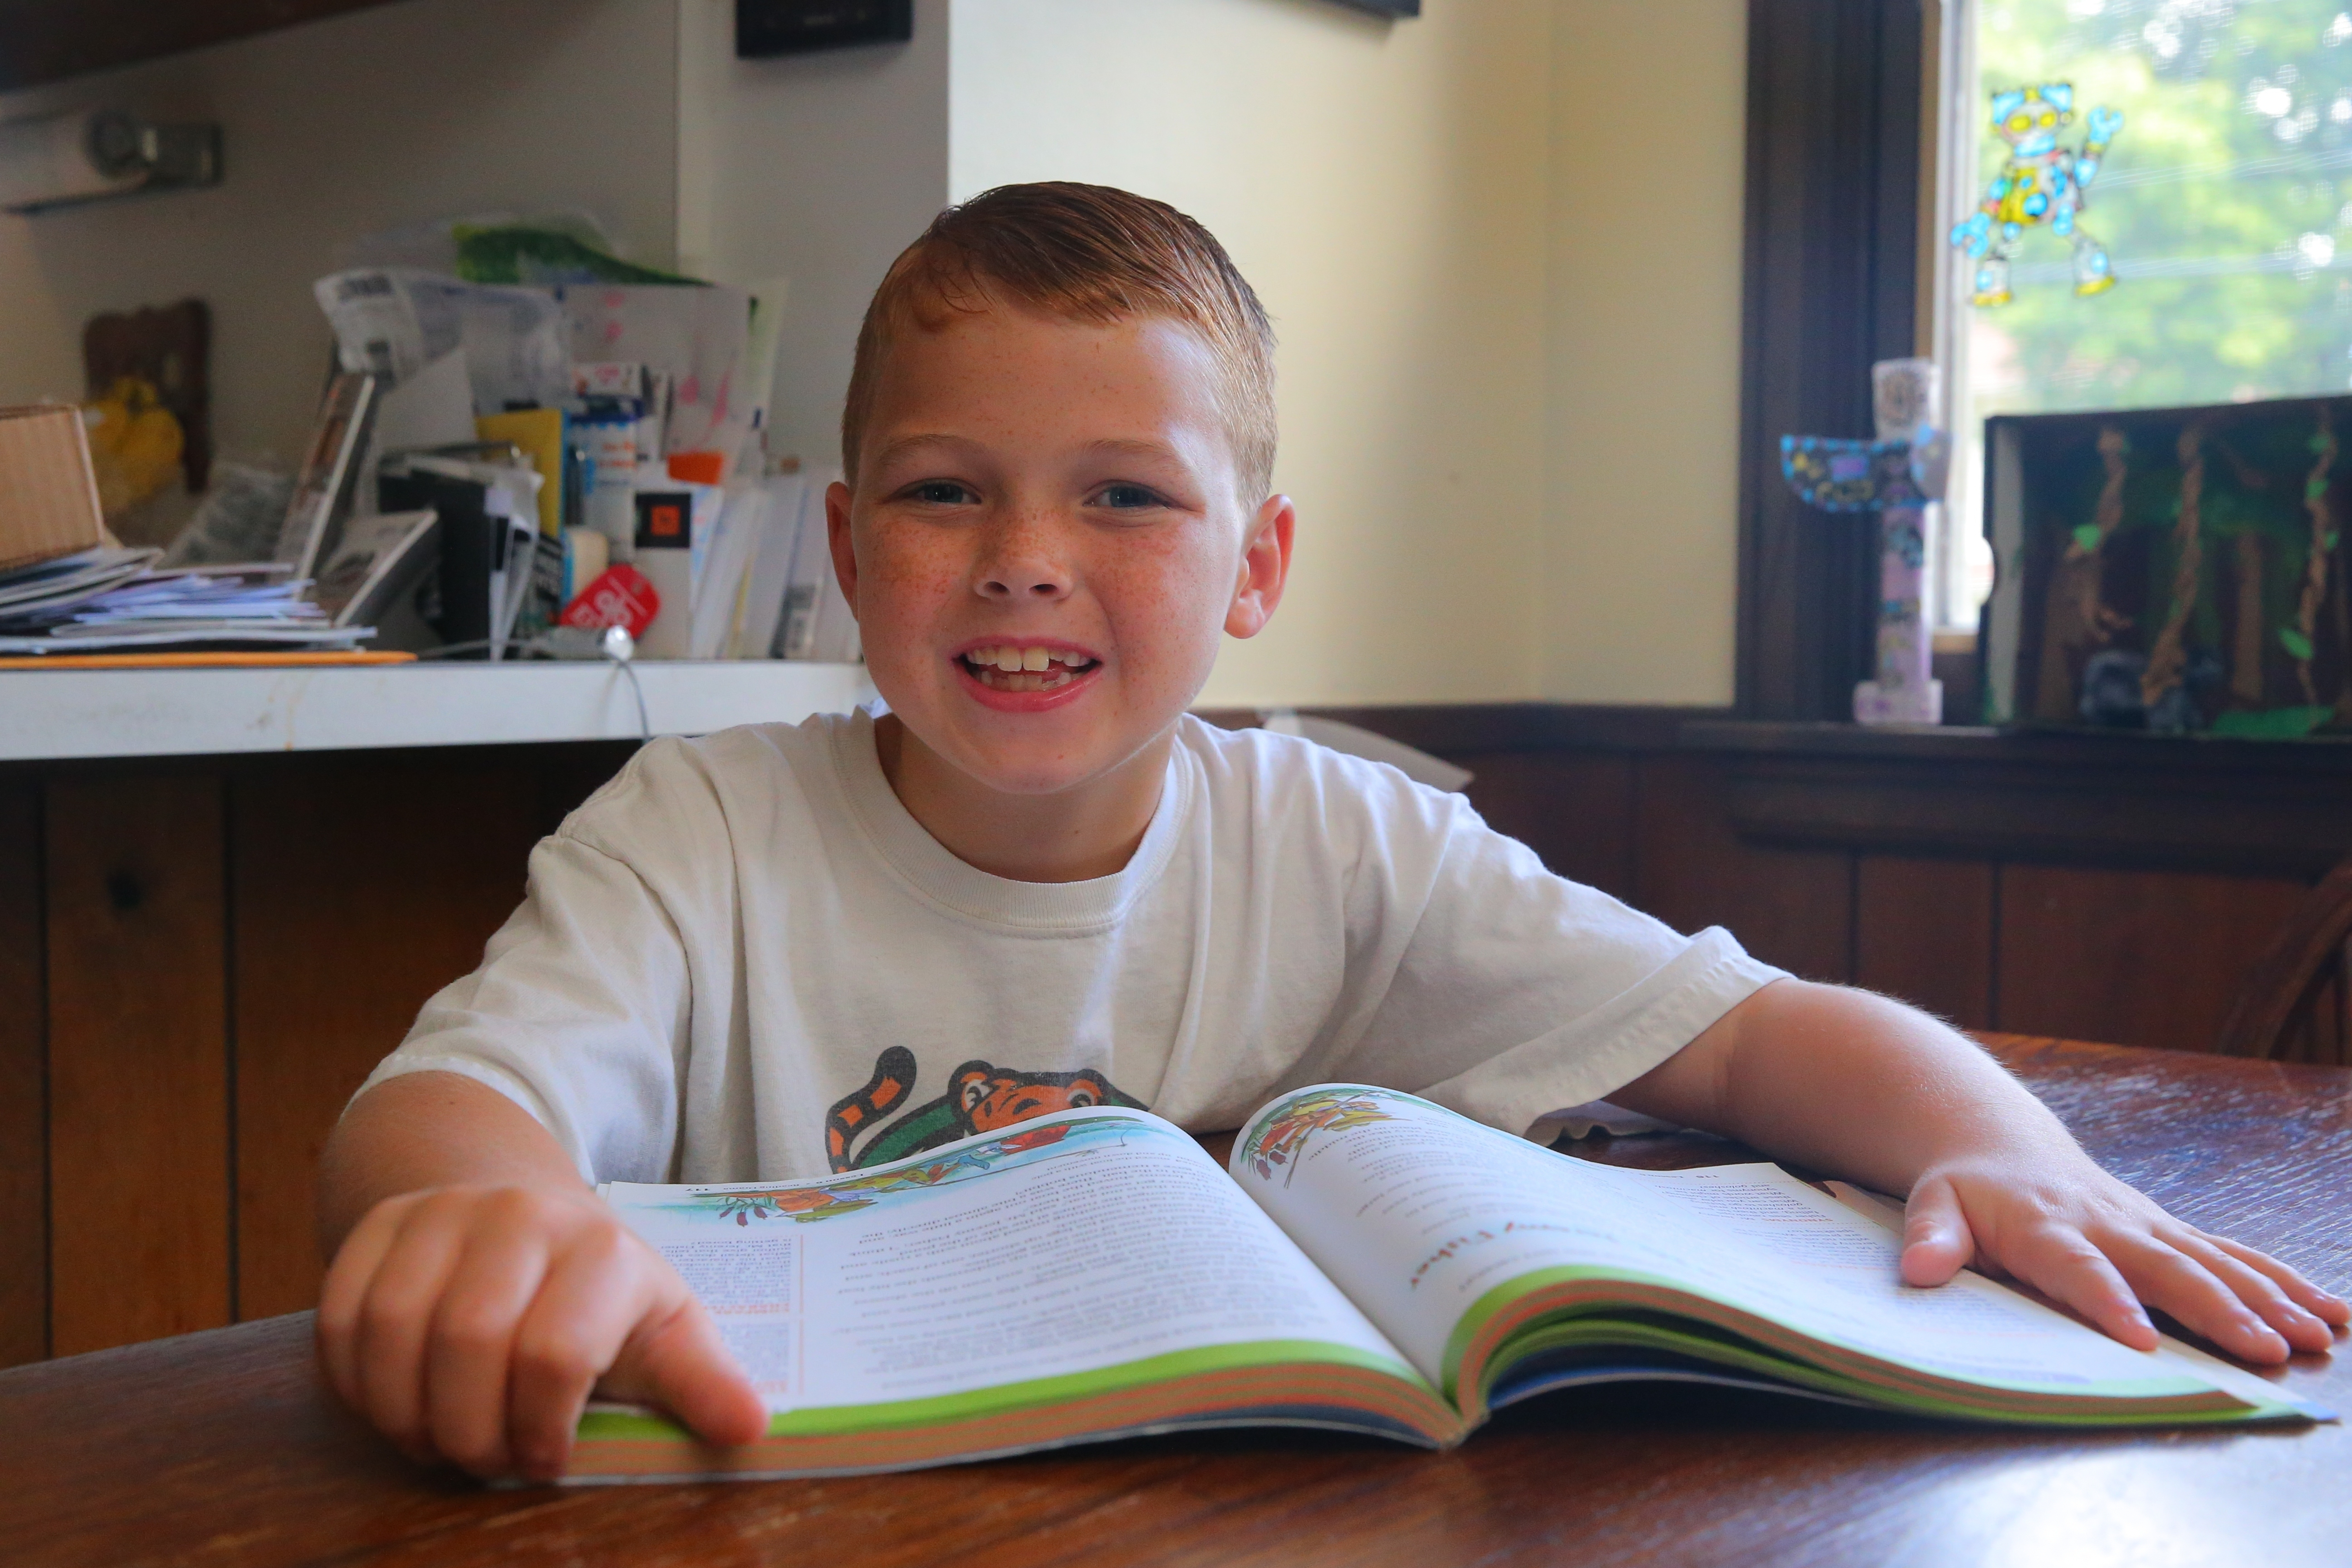 Patrick Connors, 8, cannot wait to start the third grade. Patrick took some time out of his play day to tell others how to survive the first grade.